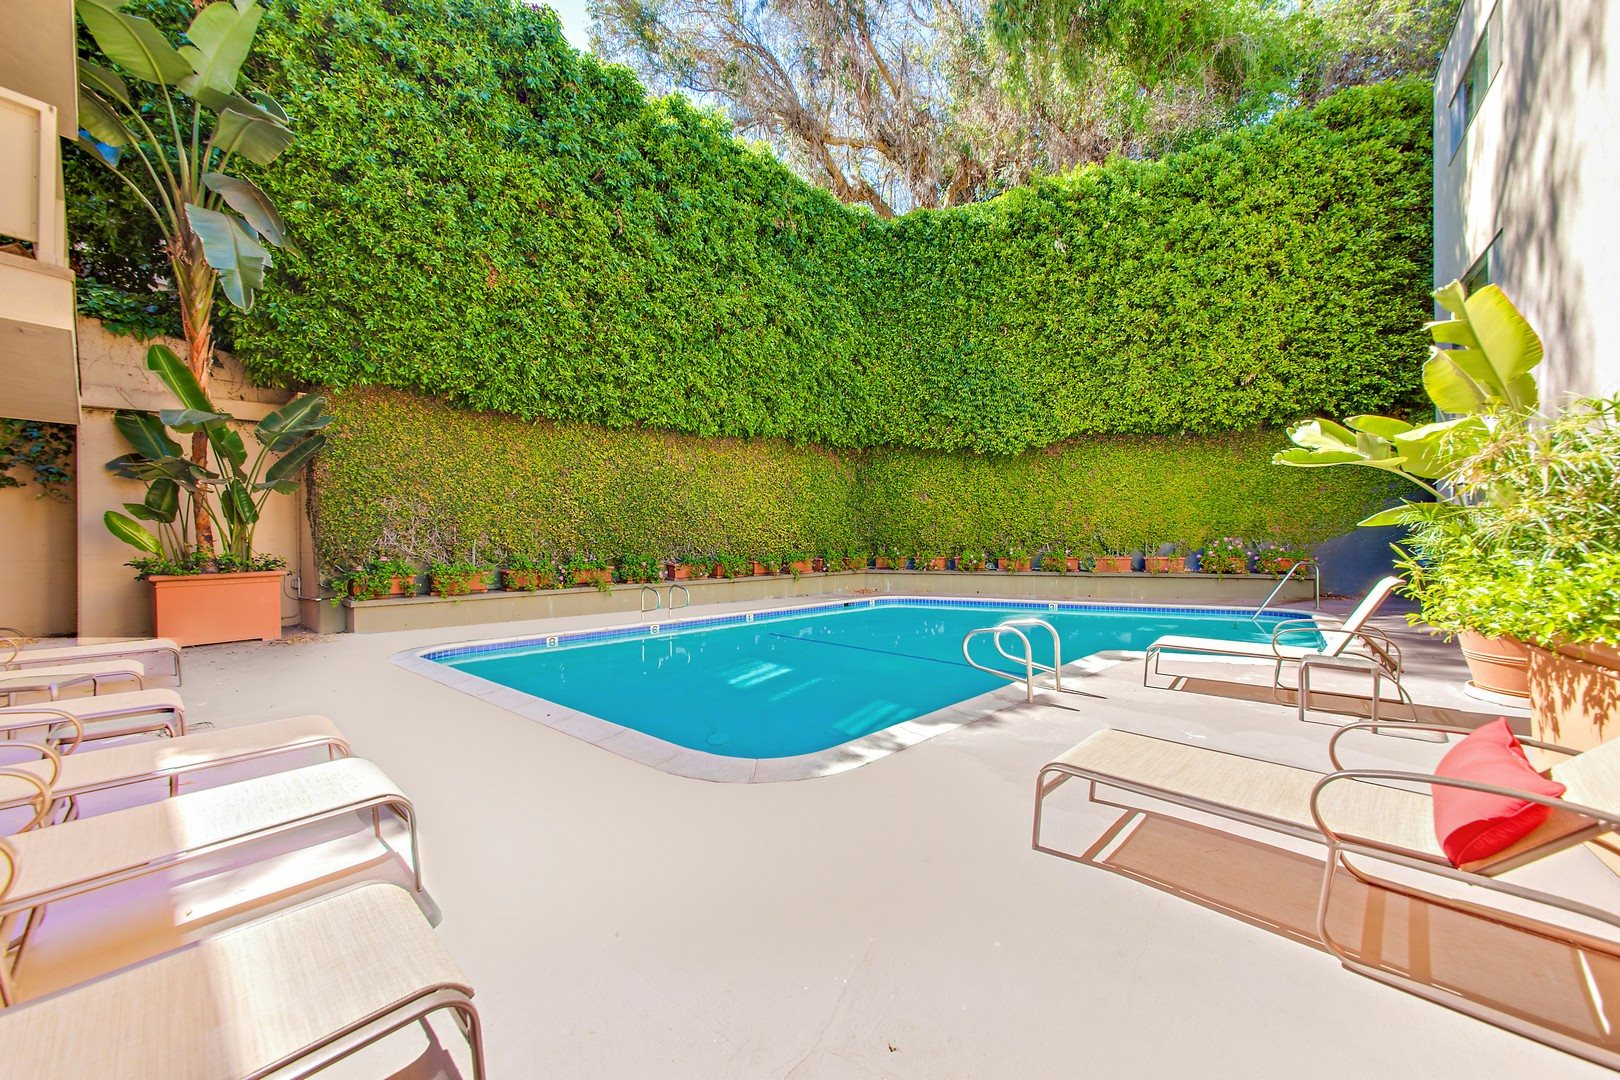 Photos and video of the brentwood tuscany in brentwood ca for The brentwood